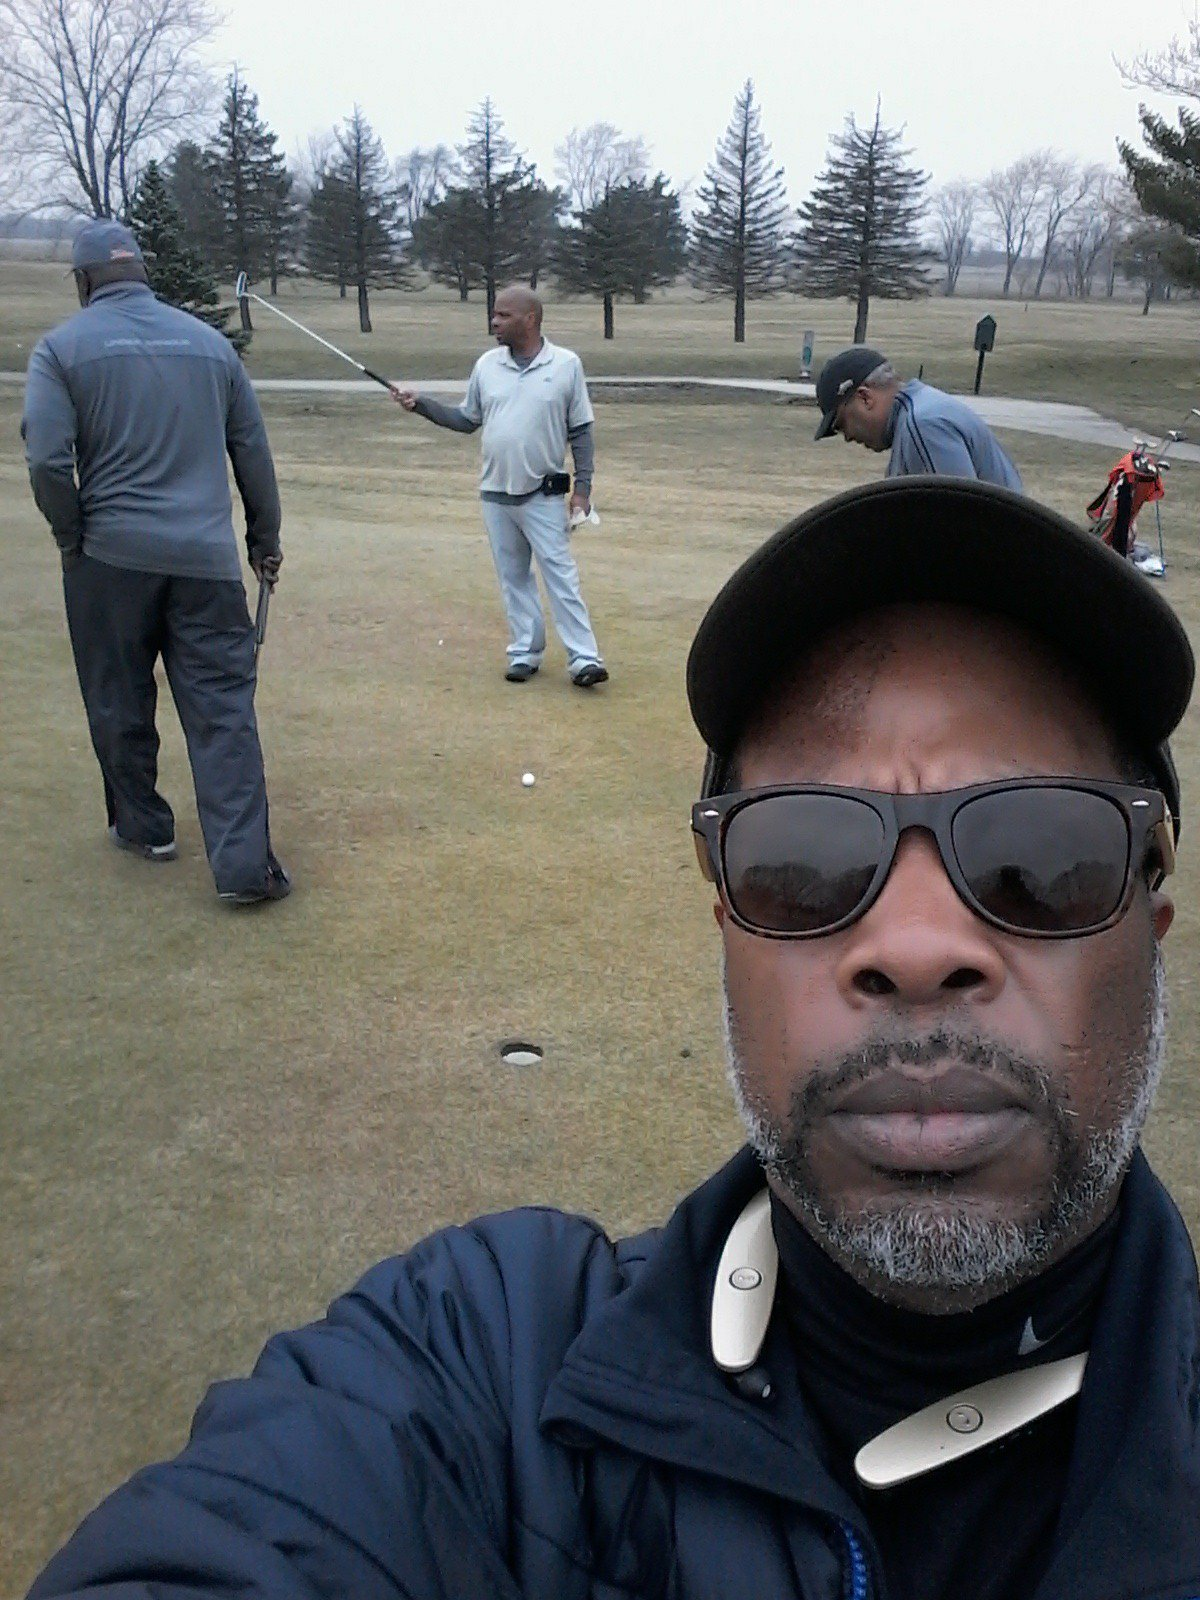 23 Days of partying, Chicago 65 degrees in February, Happy bday Golf . ..  .